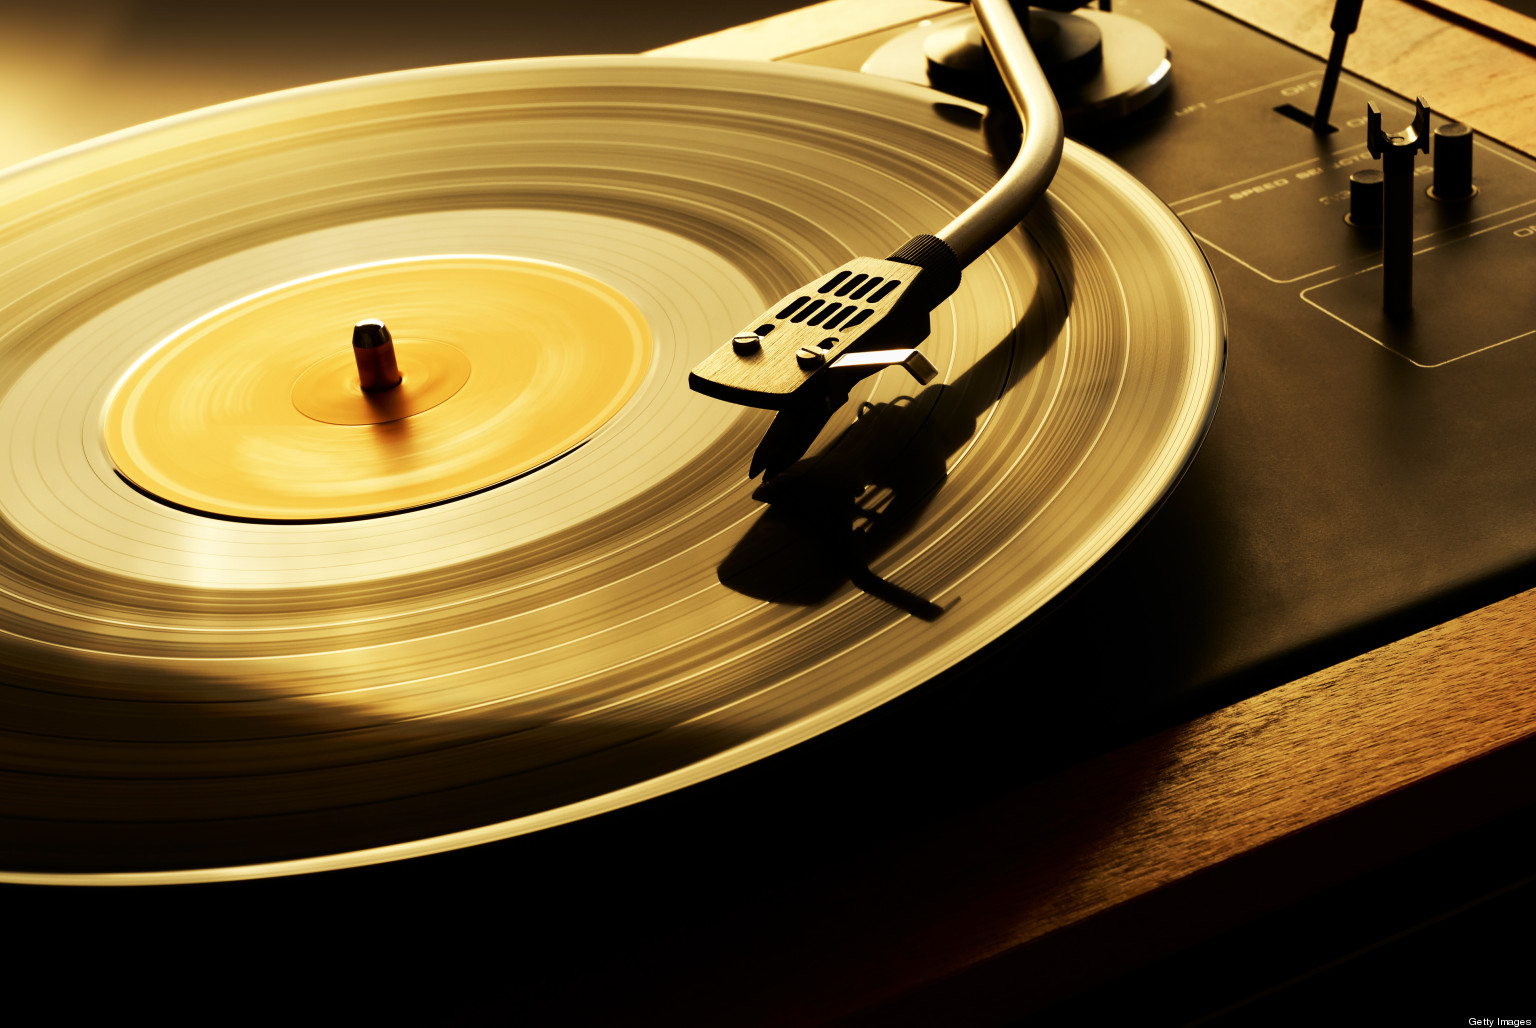 Twenty years ago, practically all DJs were spinning vinyl. Boy how that's fragmented! Find out the gear, music, software, venues, and more of our readership in today's survey results...